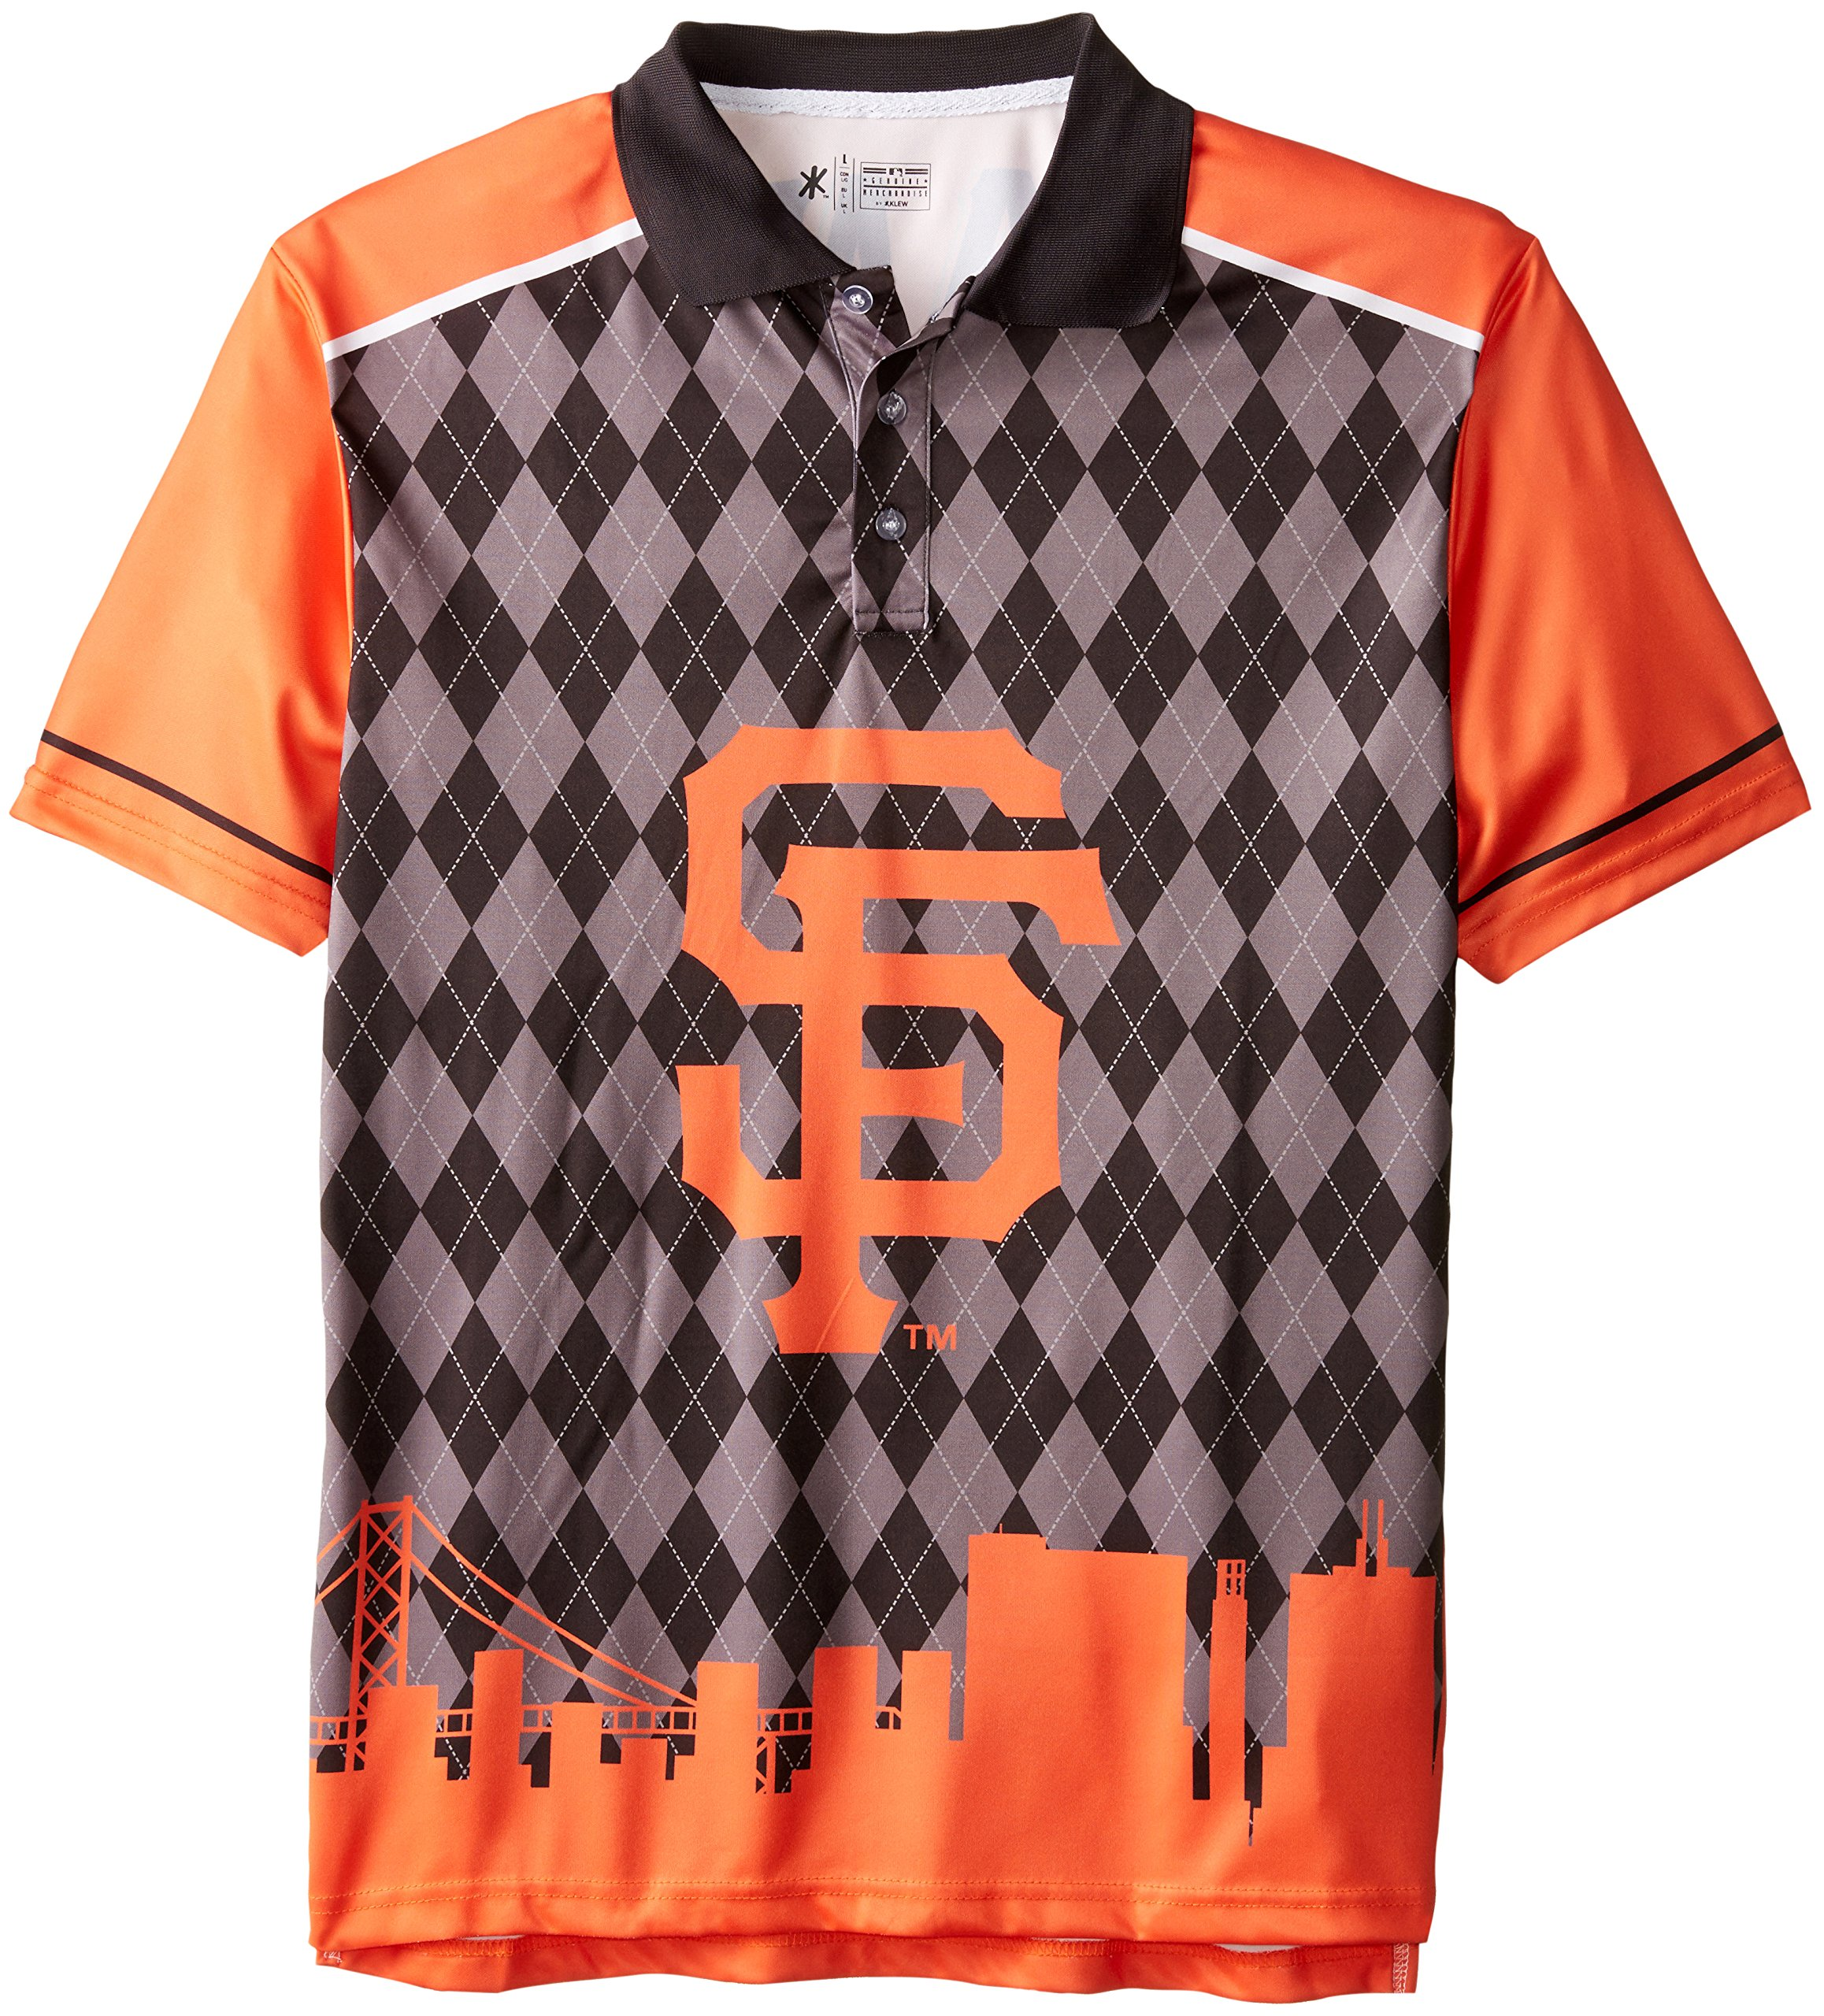 FOCO San Francisco Giants Polyester Short Sleeve Thematic Polo Shirt Extra Large by FOCO